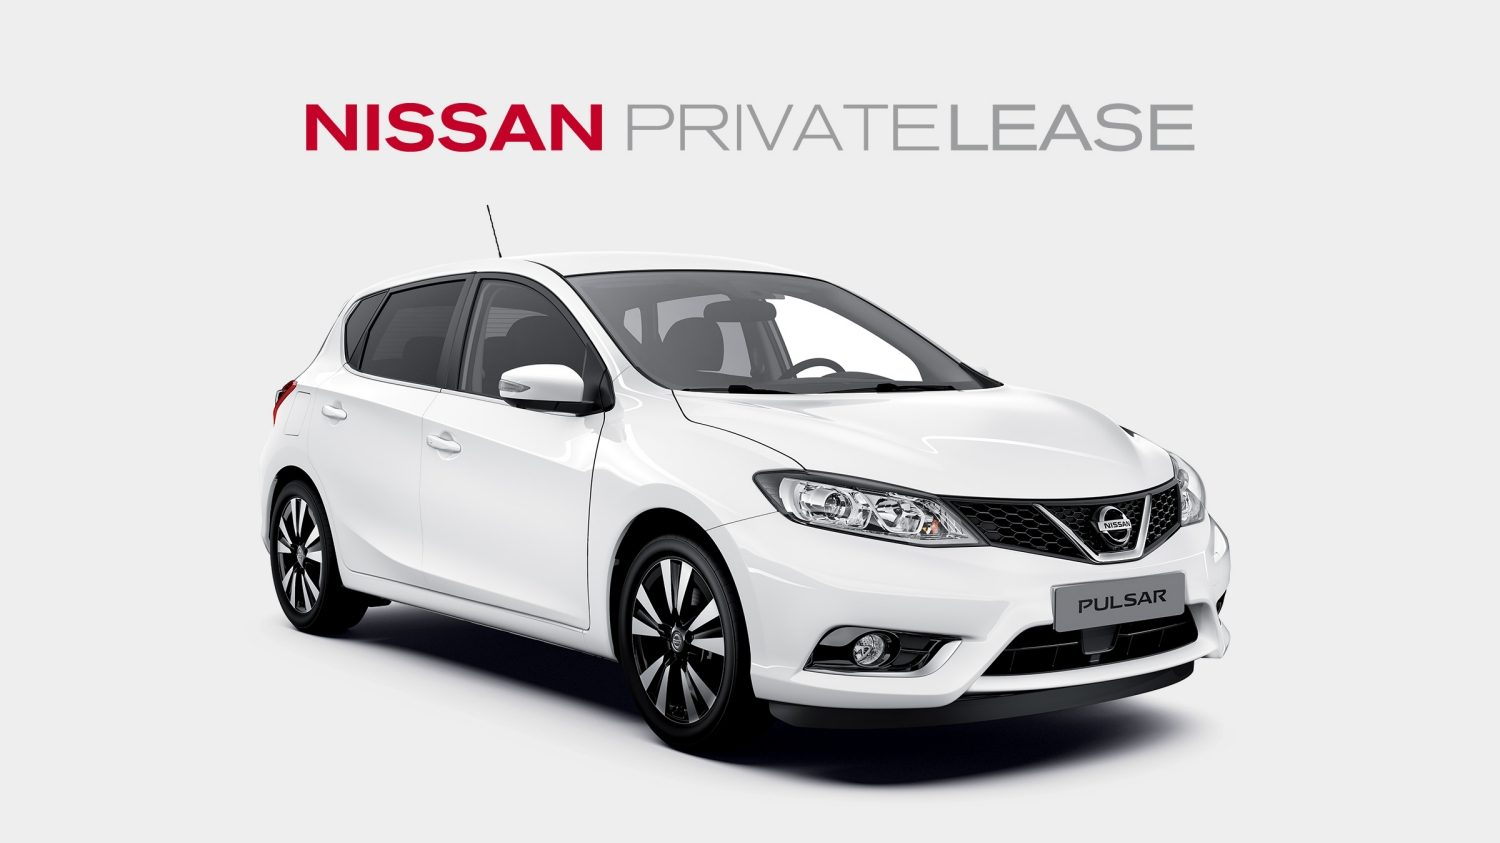 Nissan Private Lease Deals - PULSAR